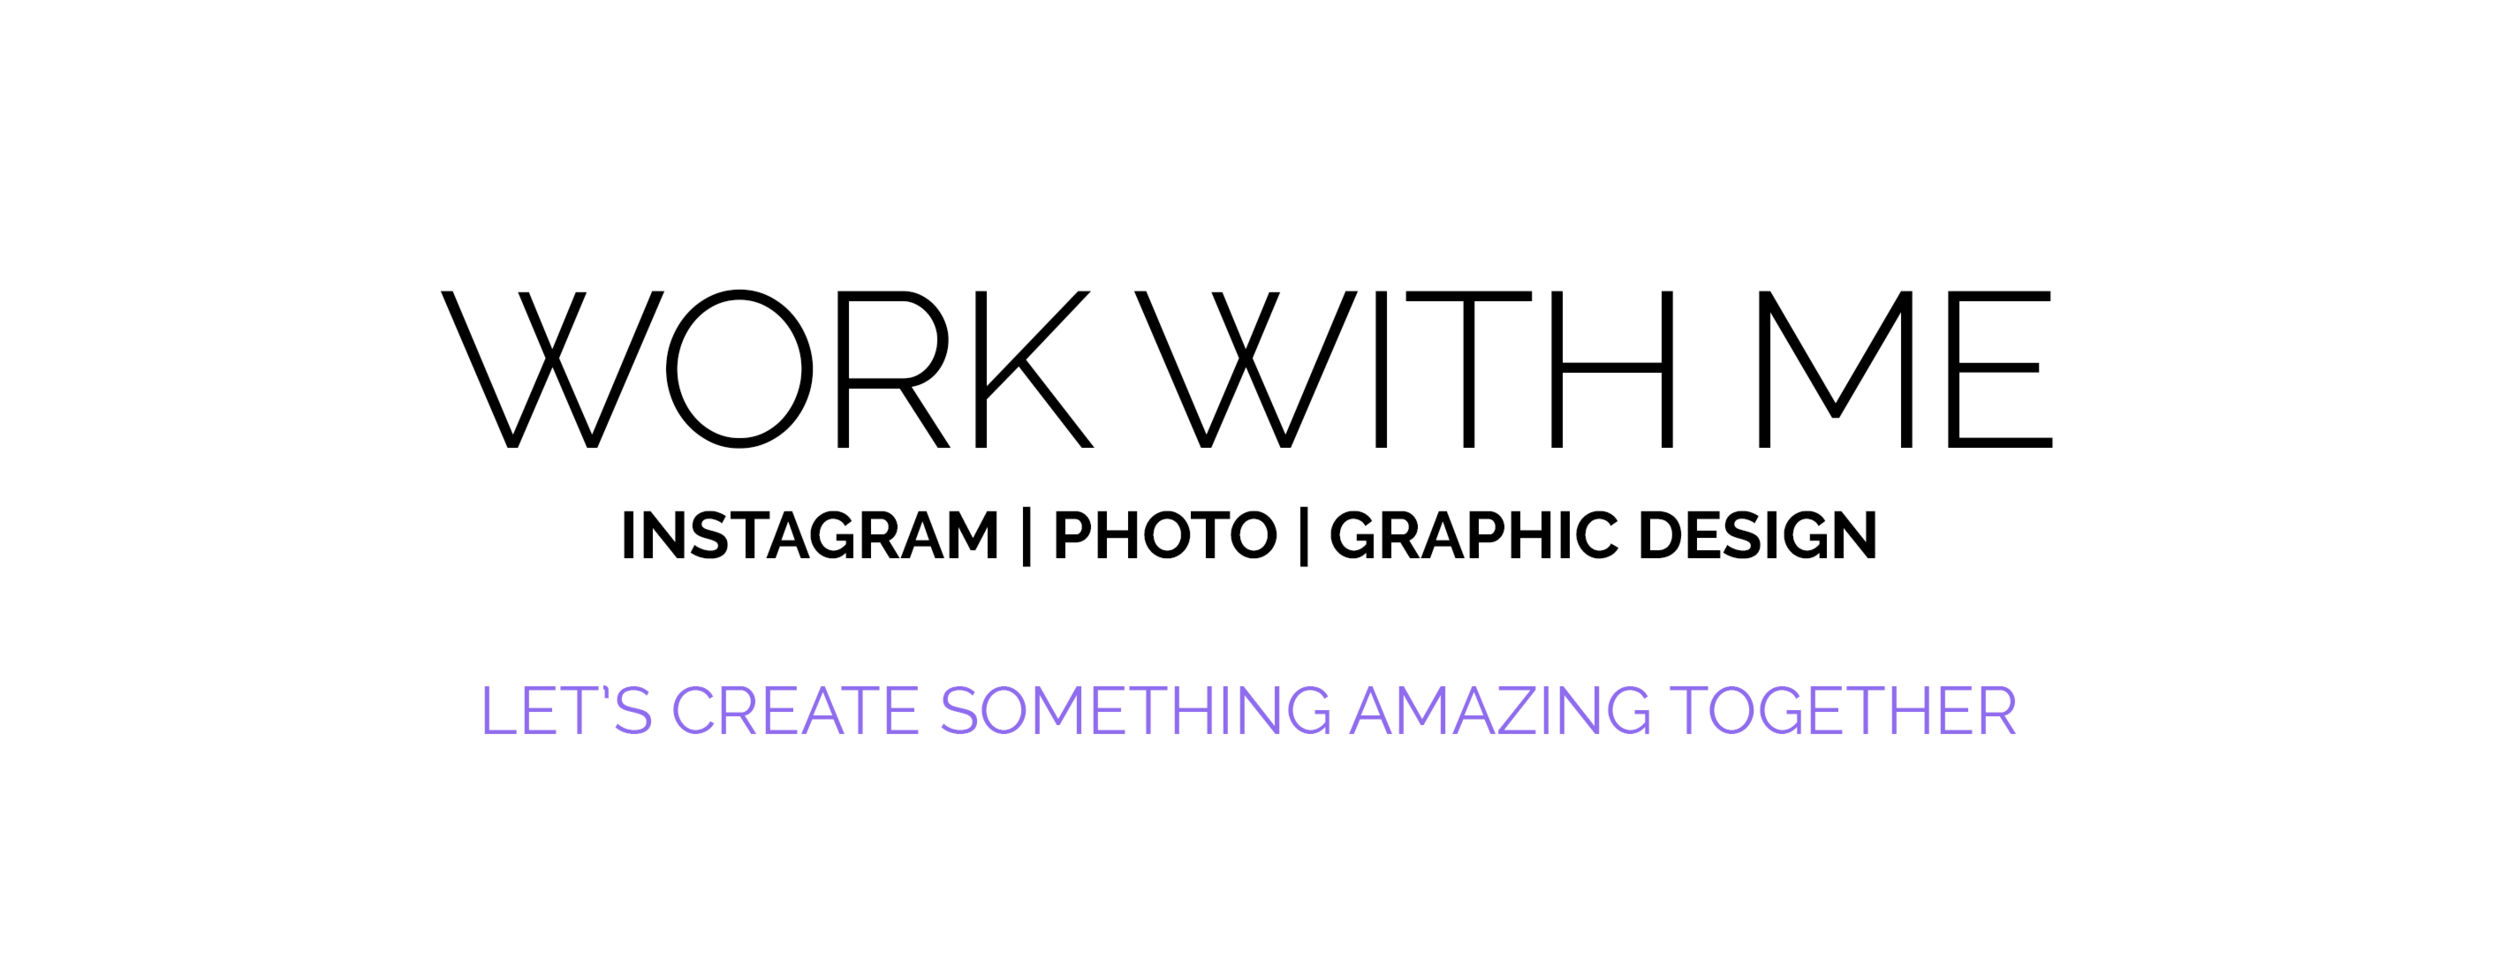 Workwithme-banner.png